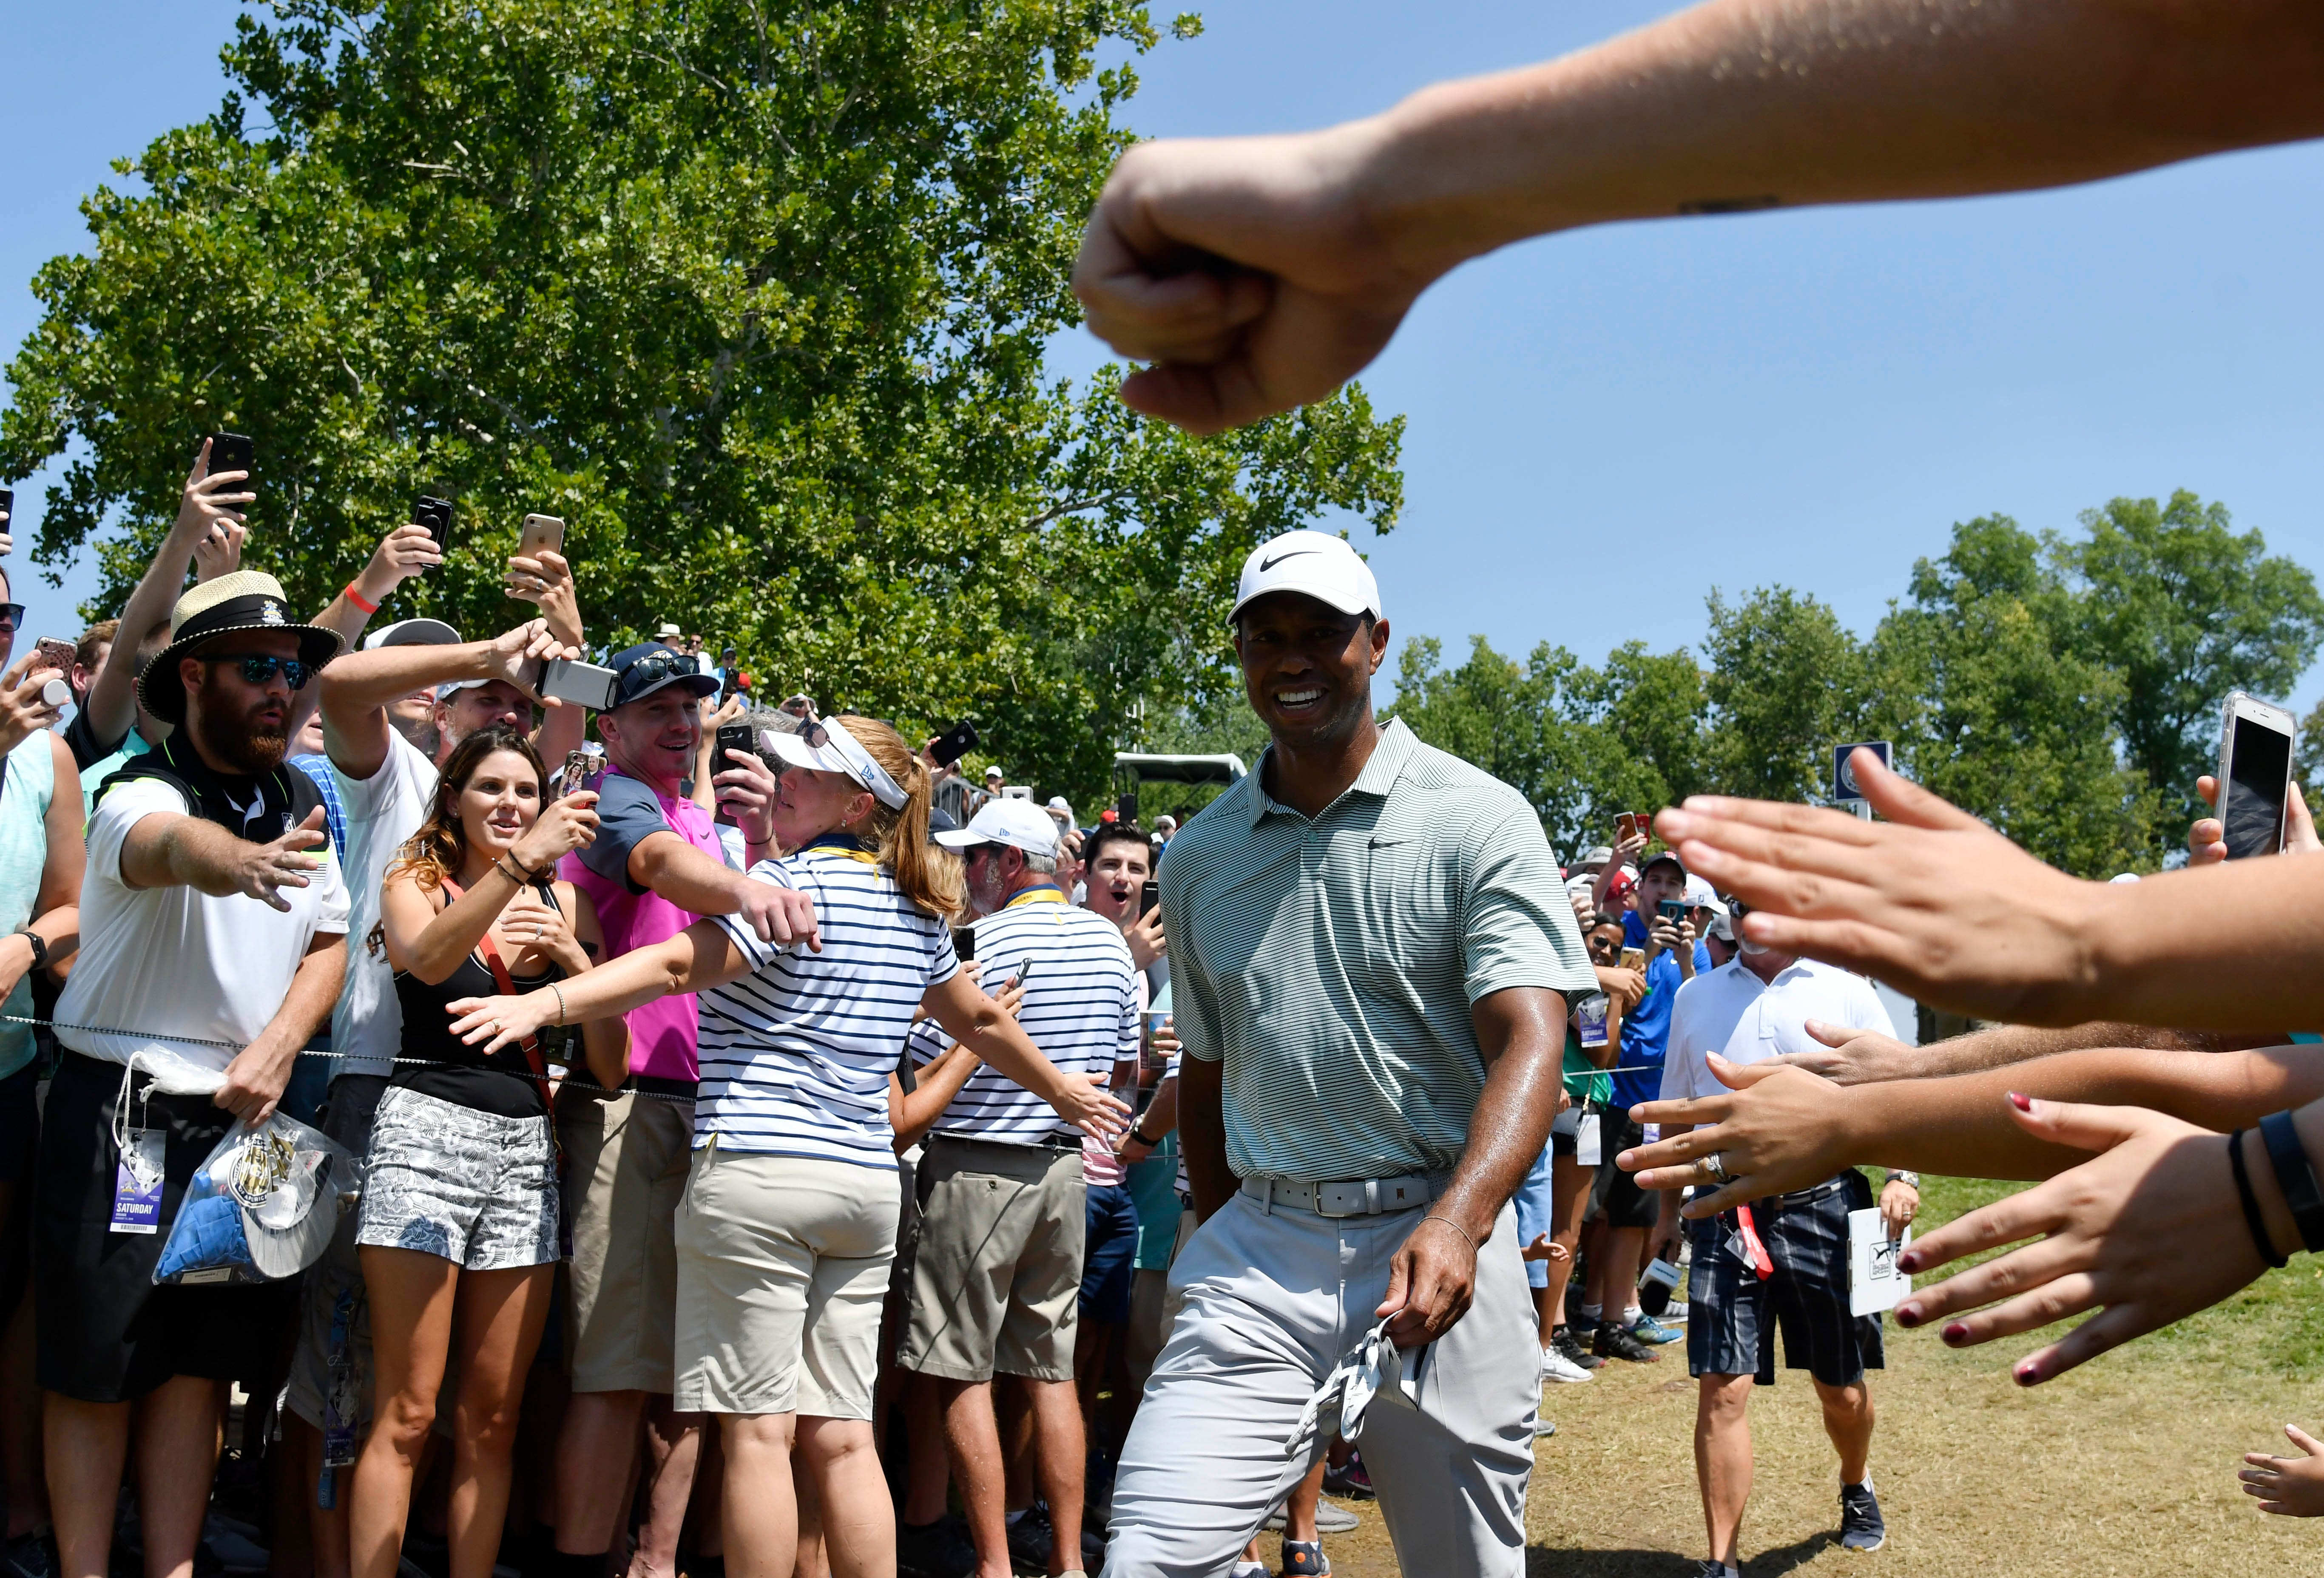 the tiger woods effect revs up pga championship fans to a